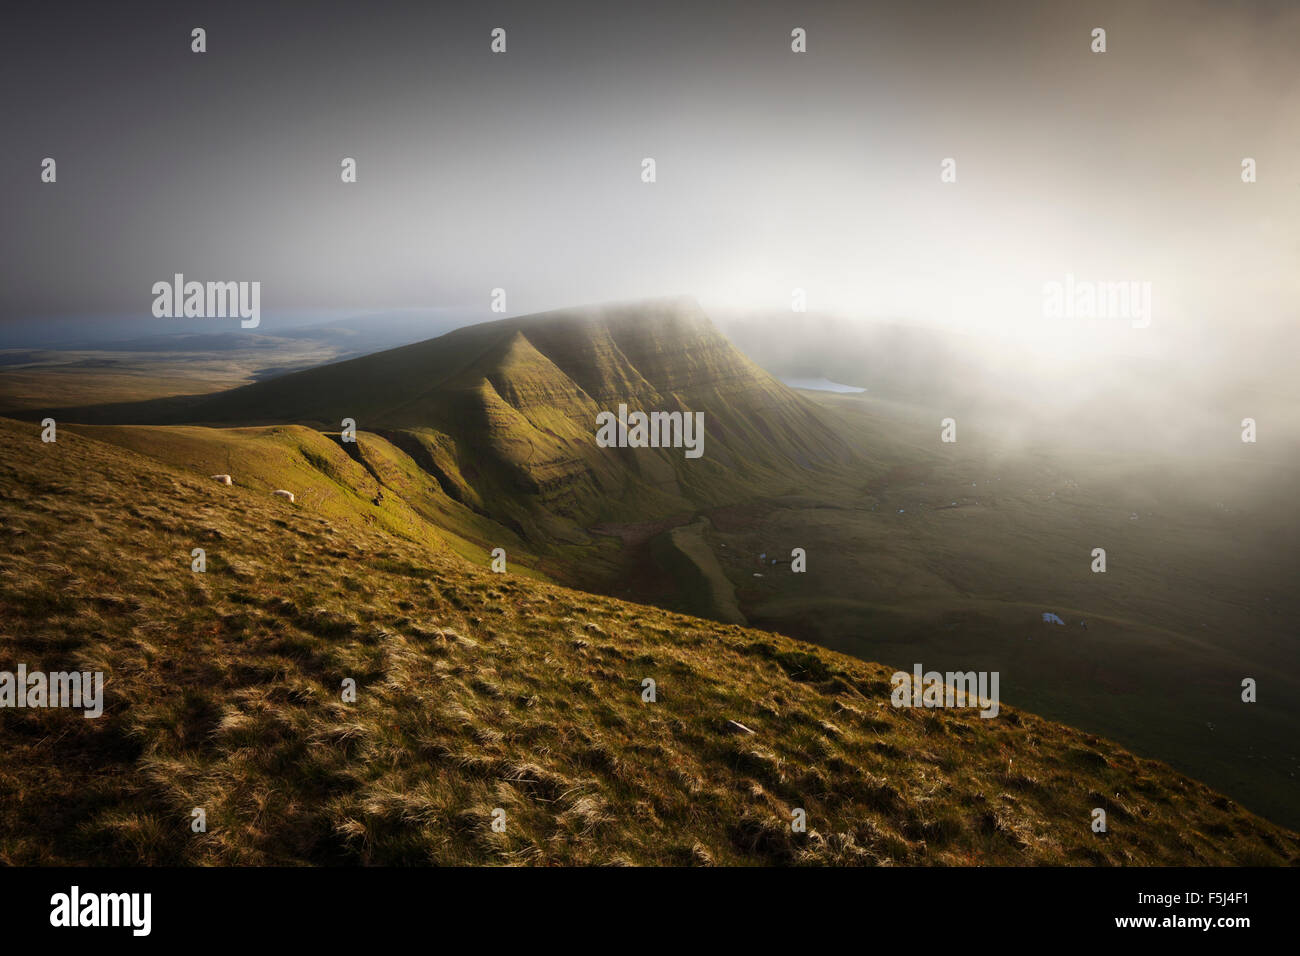 Mist rolling in over Picws Du. The Black Mountain. Brecon Beacons National Park. Carmarthenshire. Wales. UK. Stock Photo